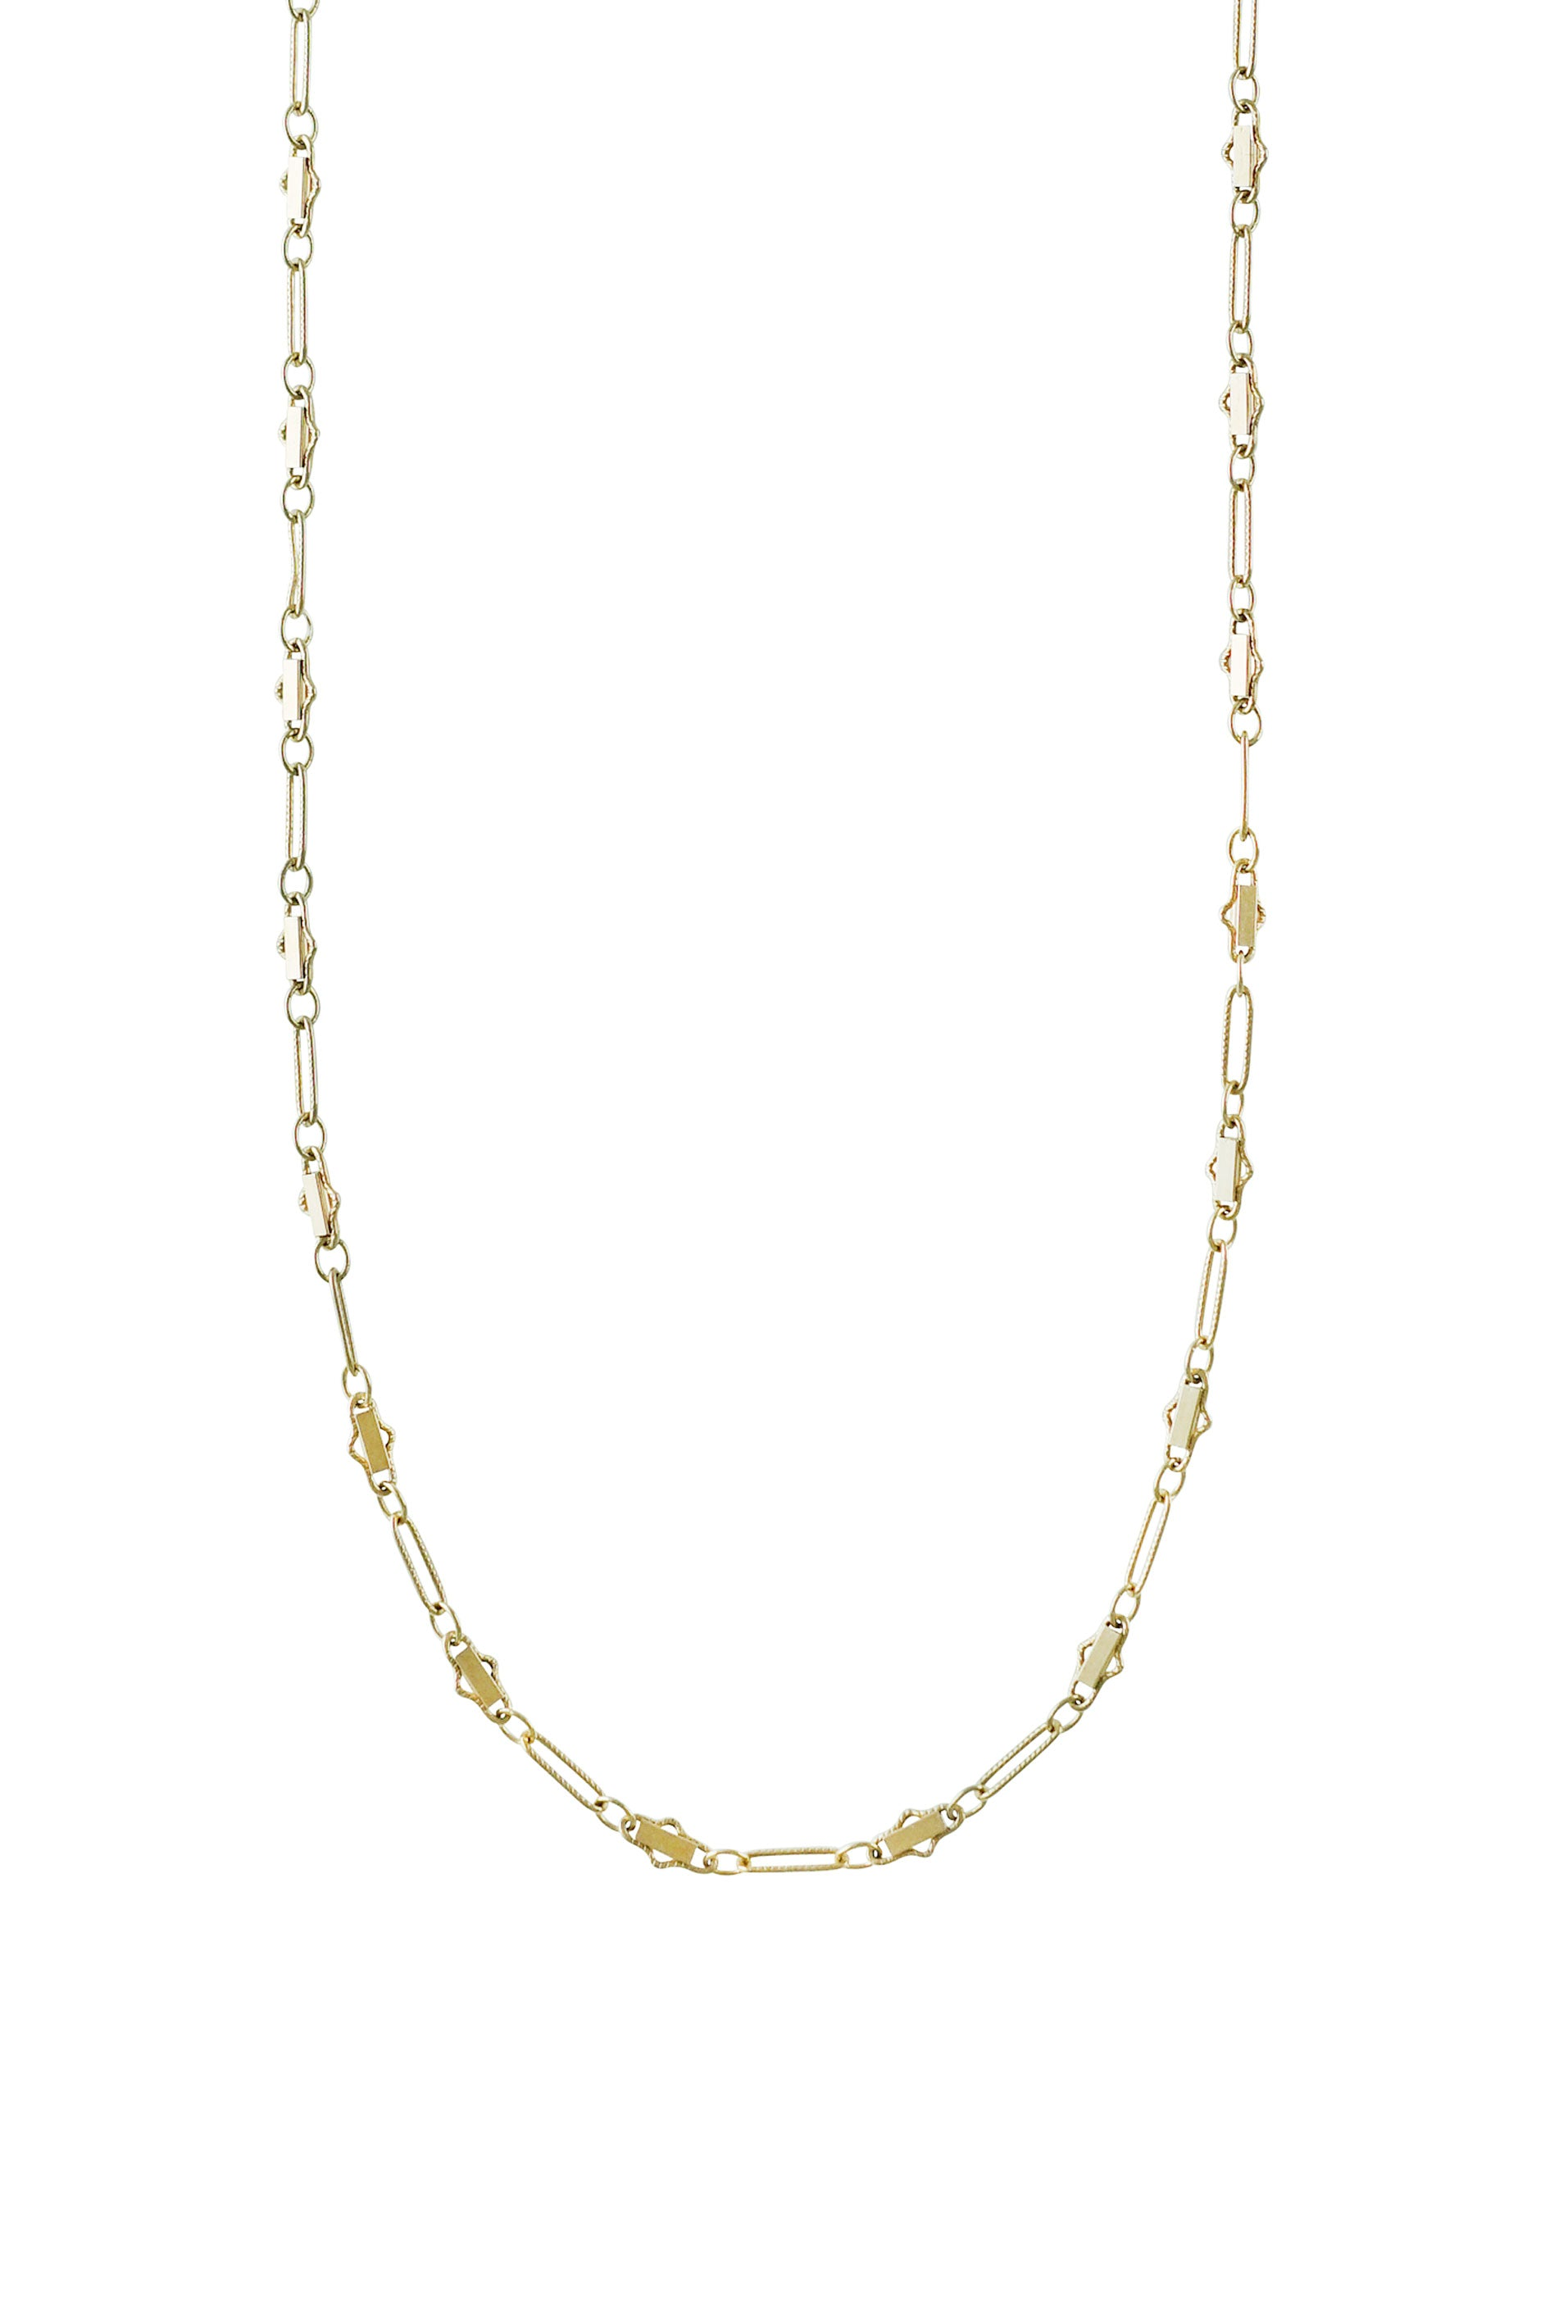 necklace pendant with gold shop stylezog necklaces neck com long